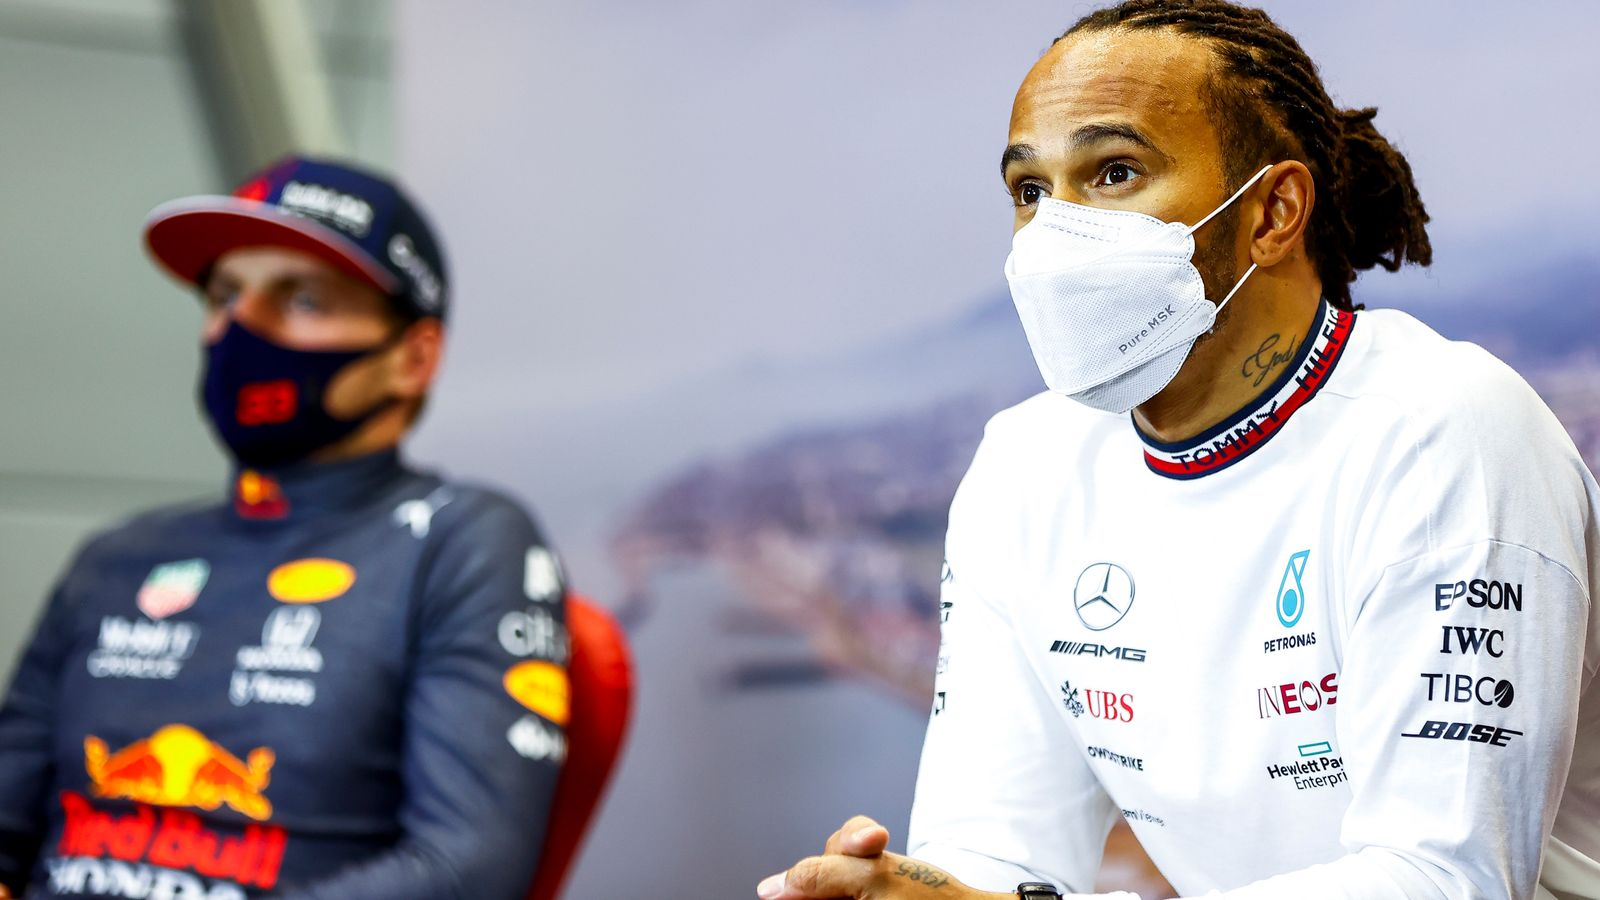 United States GP: Lewis Hamilton, Max Verstappen early Austin flashpoint whets appetite for duel